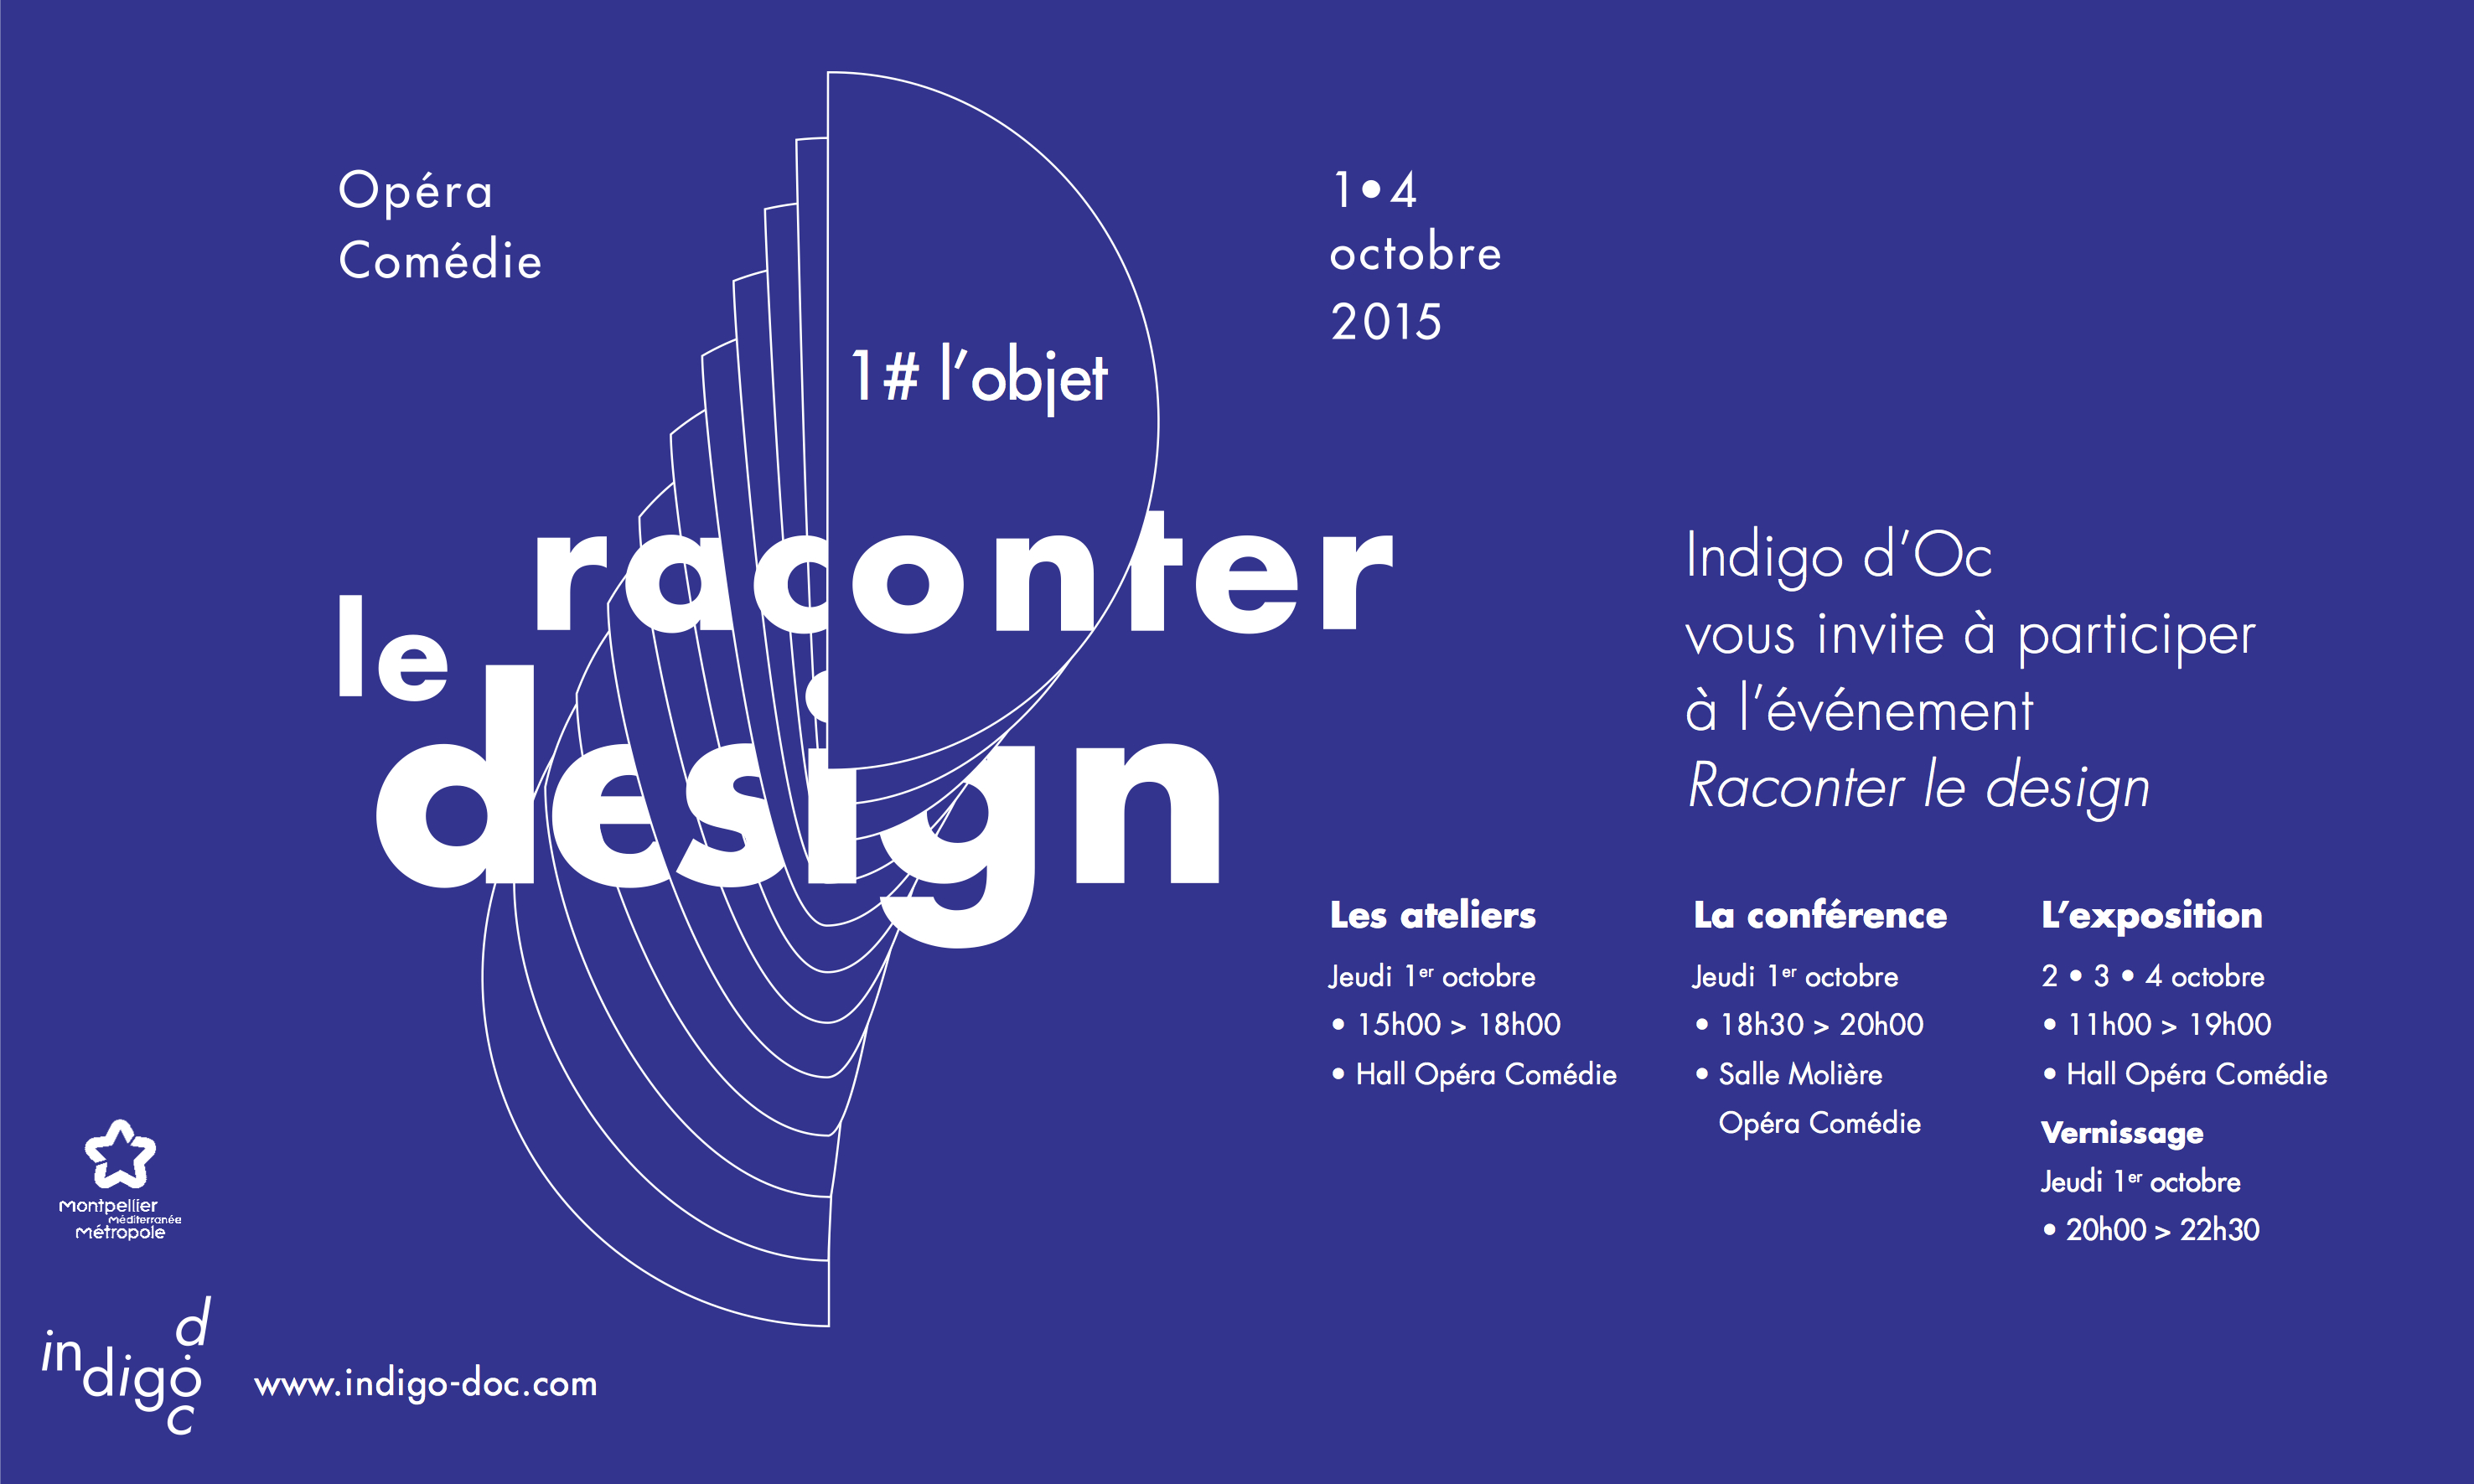 Pilag - raconter le design